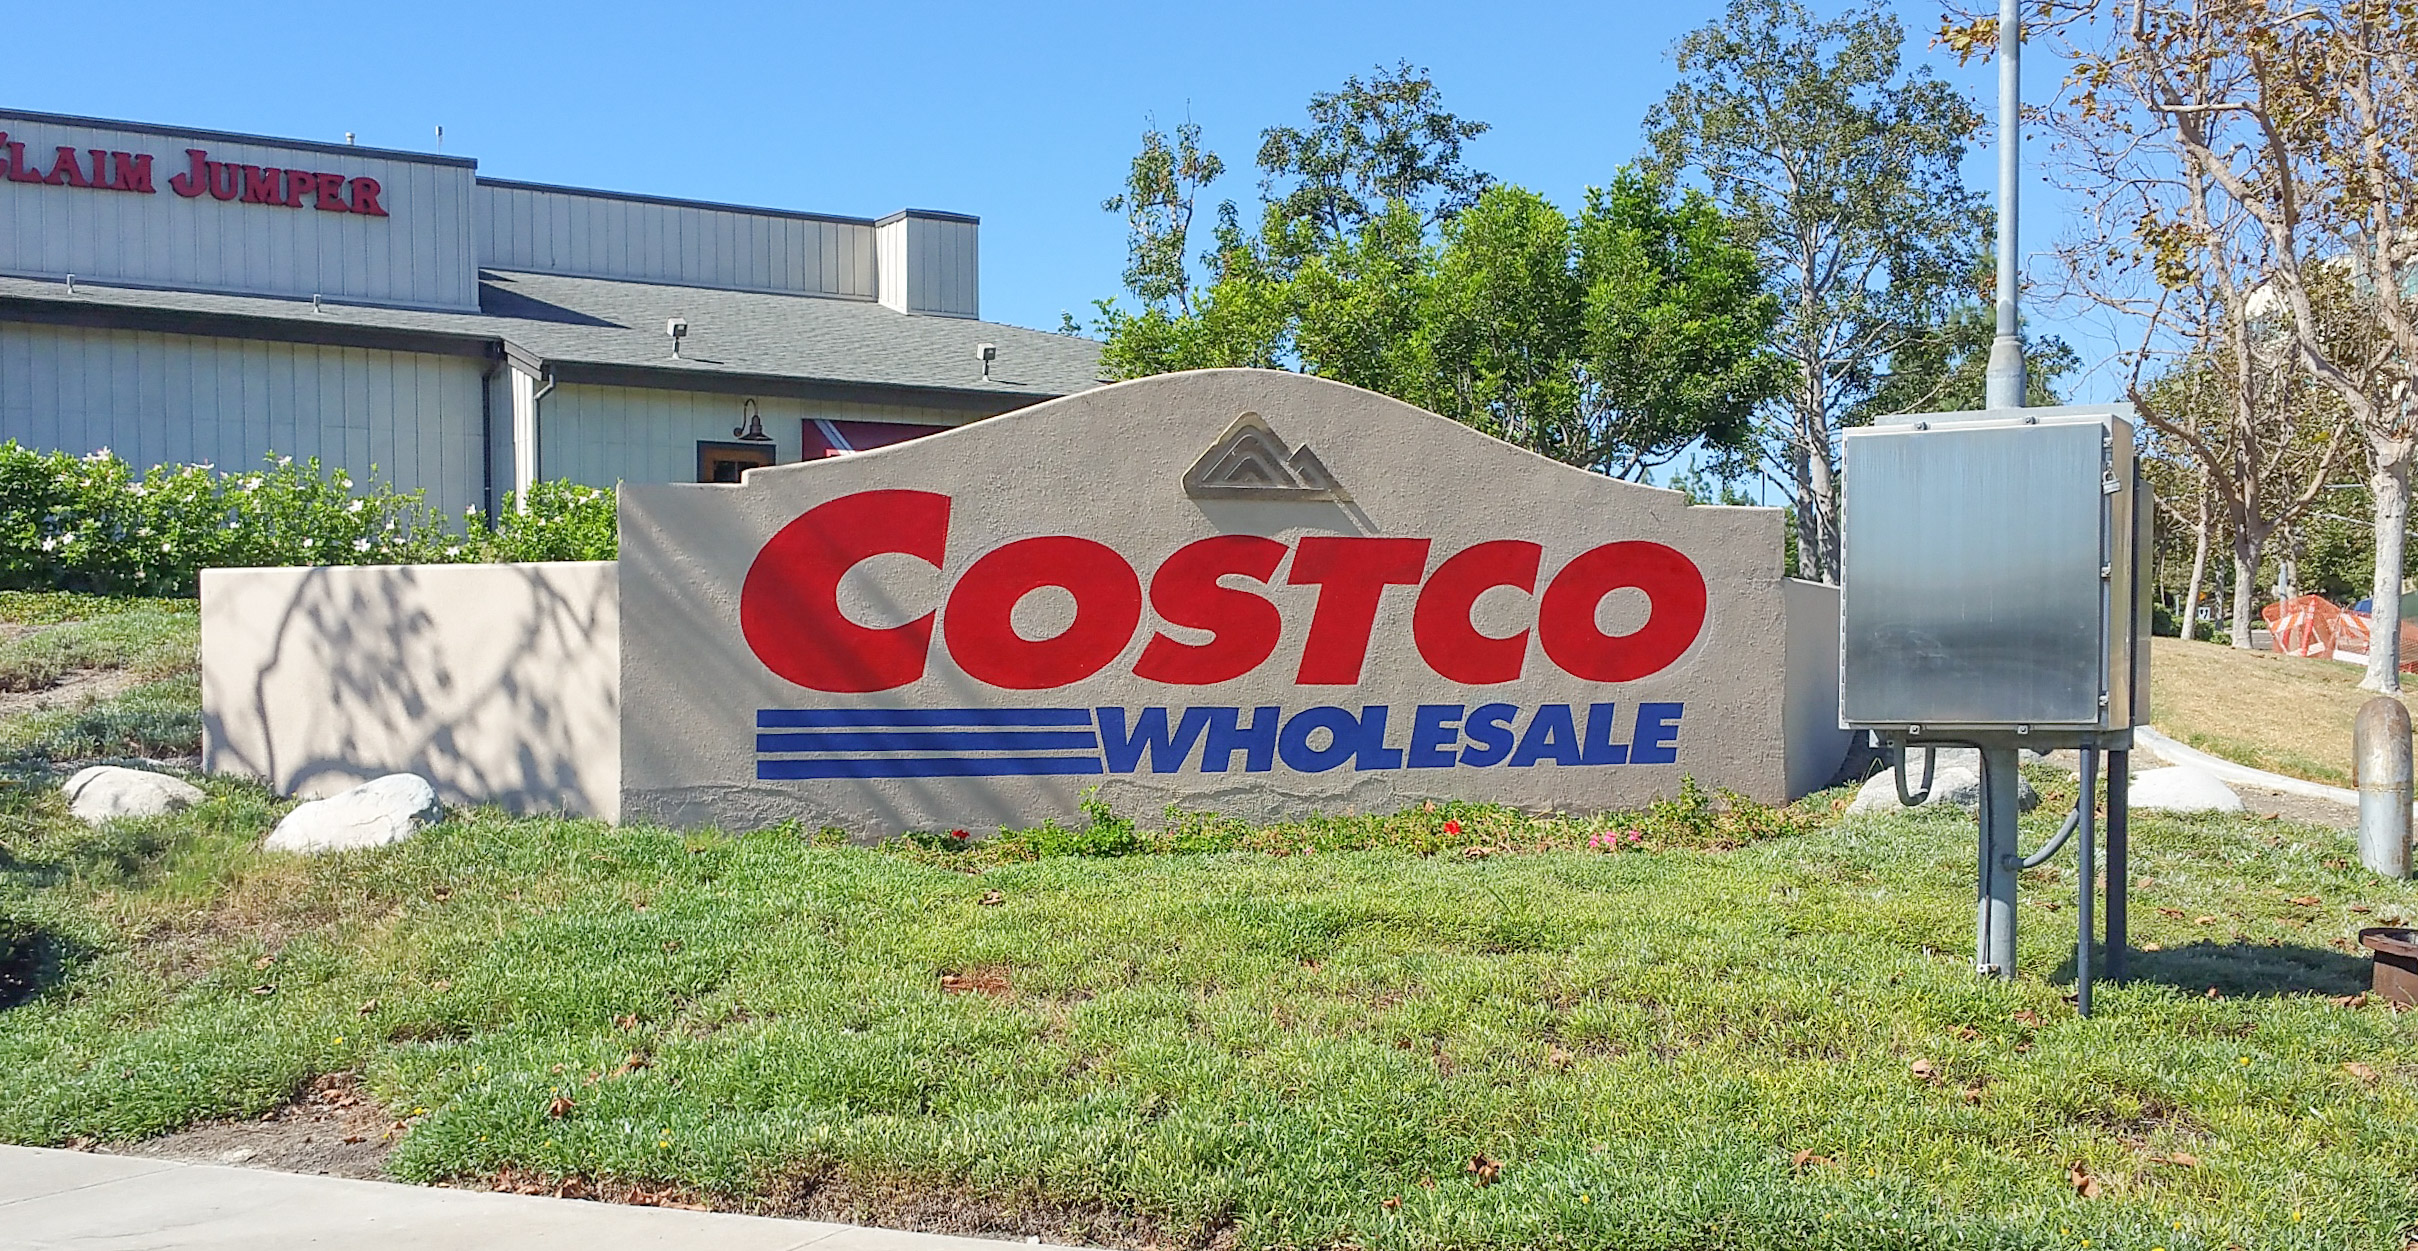 Costco Wholesale monument sign at Carmel Mountain in San Diego - hand painted graphics on an existing concrete block/stucco monument sign.